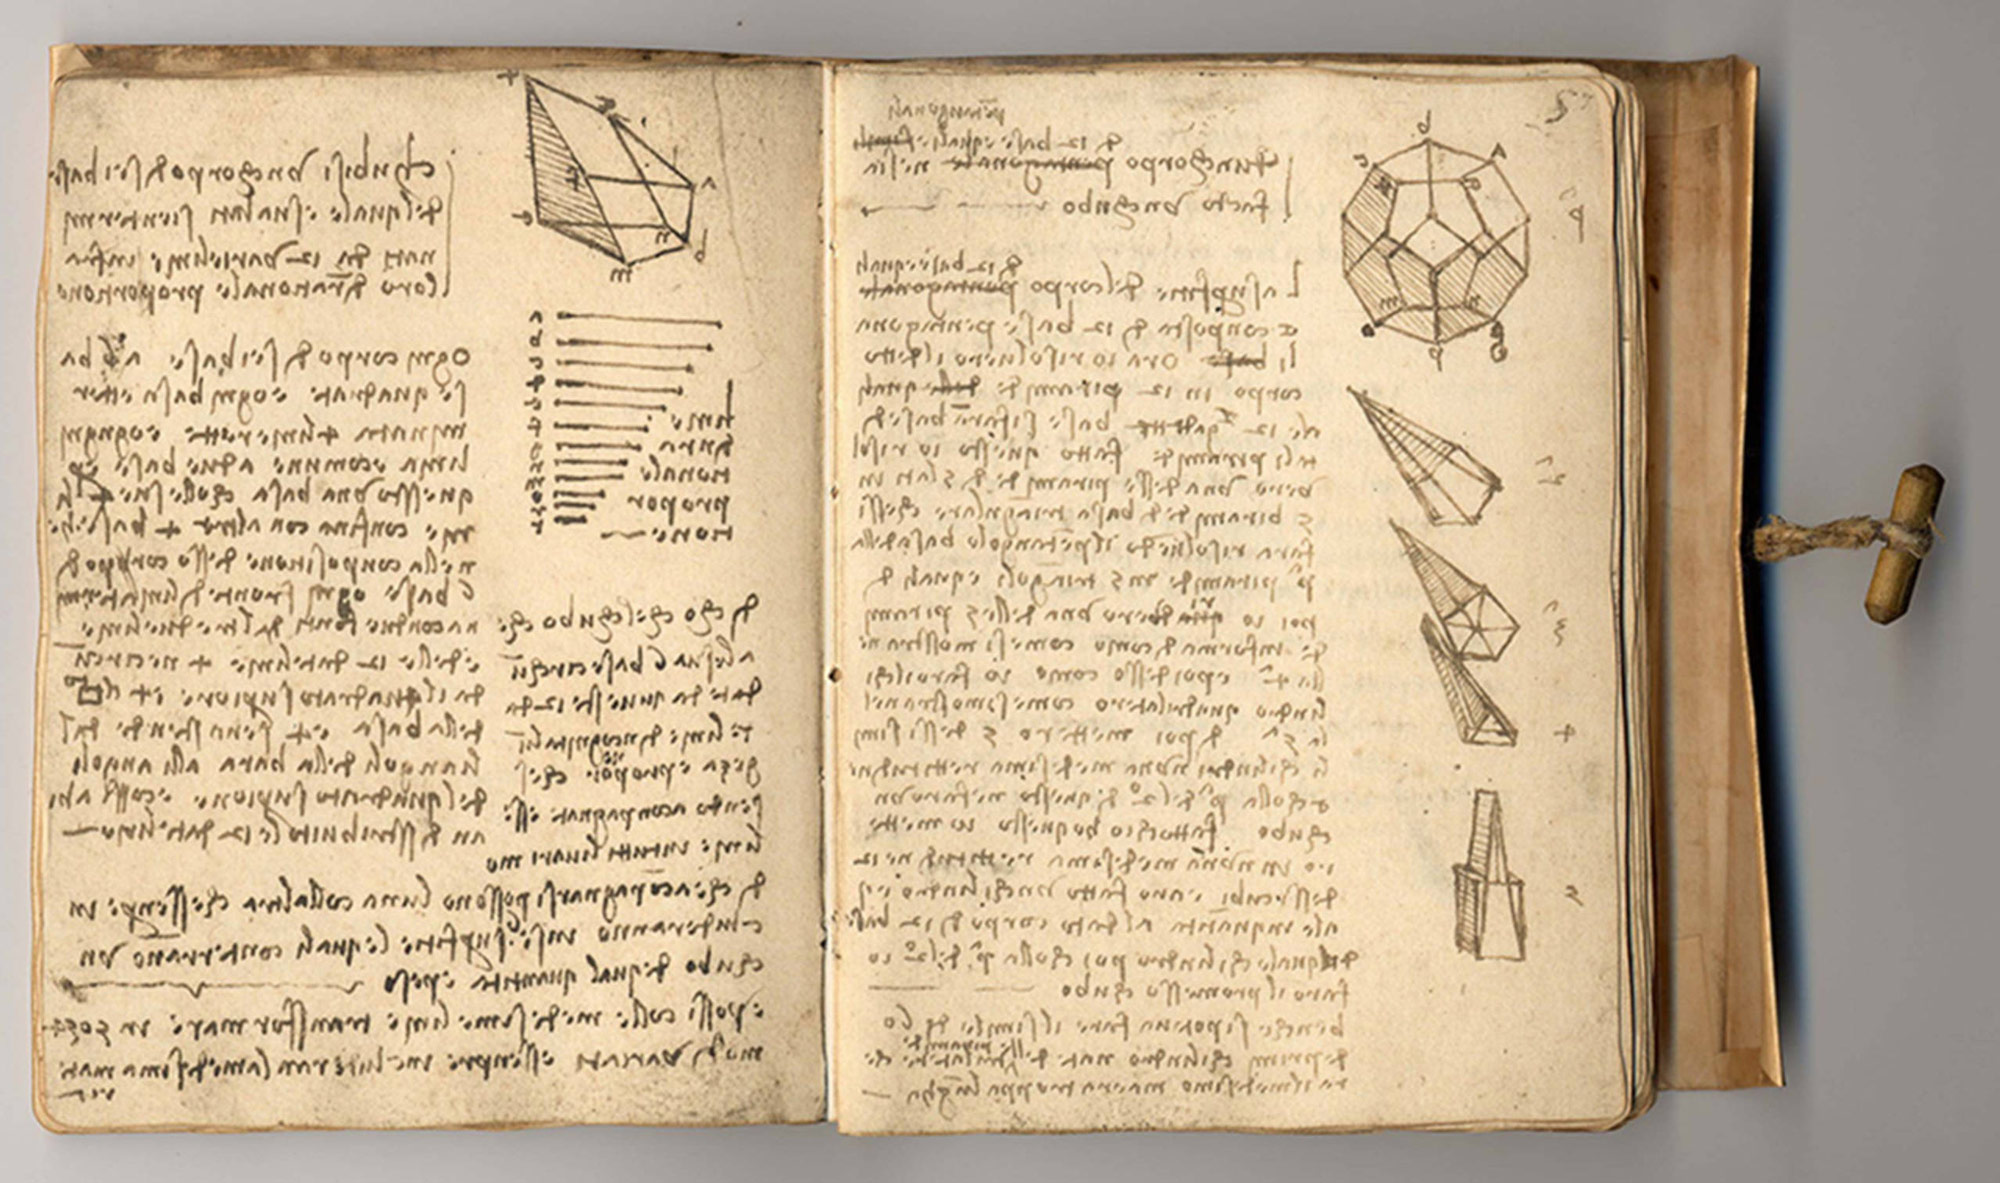 Codex Forster II , Leonardo da Vinci, late 15th – early 16th century, Italy. Museum no. Forster MS.141. © Victoria and Albert Museum, London